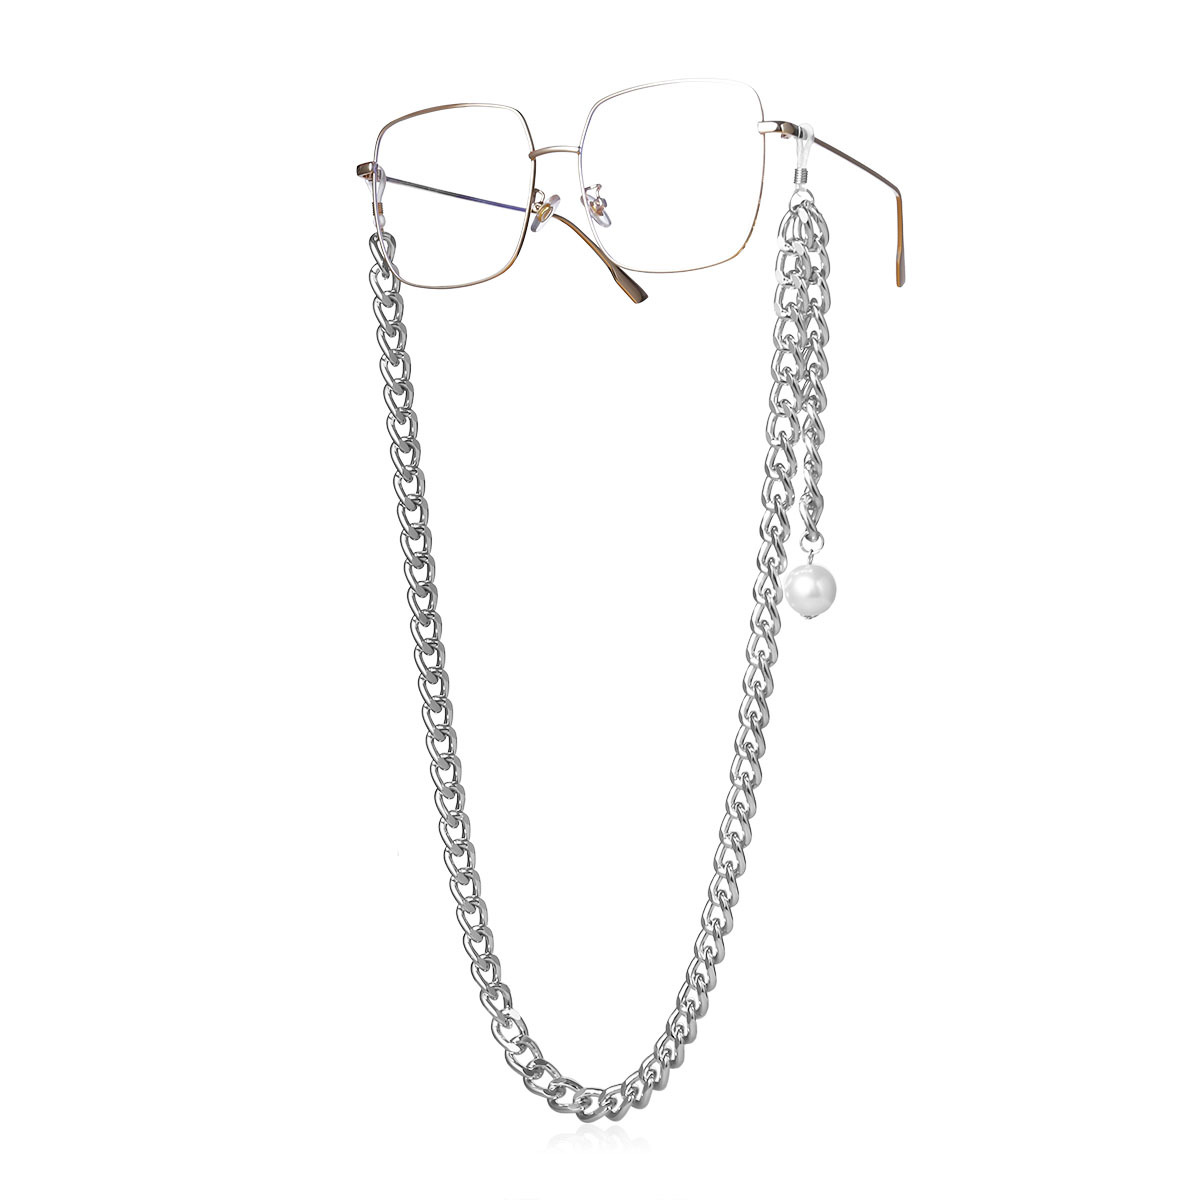 Fashion jewelry thick chain accessories imitation pearl tassel pendant geometric glasses chain wholesale Nihaojewelry NHXR211850